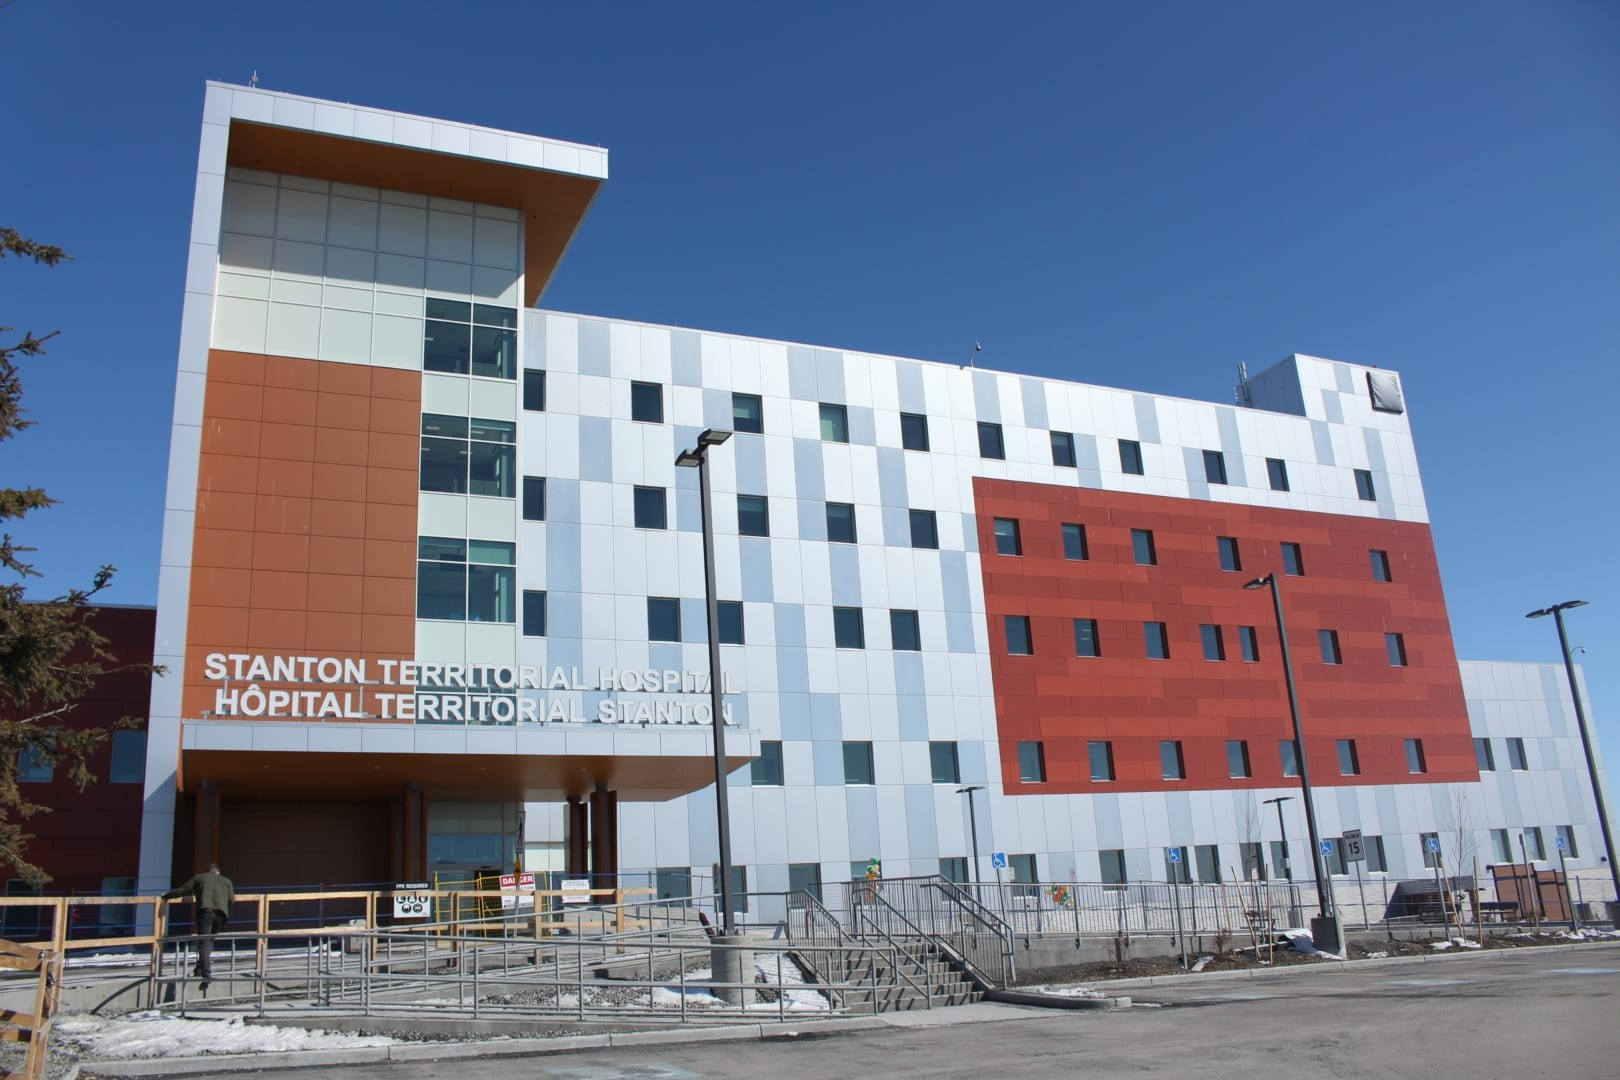 The new Stanton Territorial Hospital plans to open the doors to emergency services on May 26 at 6 a.m. Brett McGarry / NNSL Photo